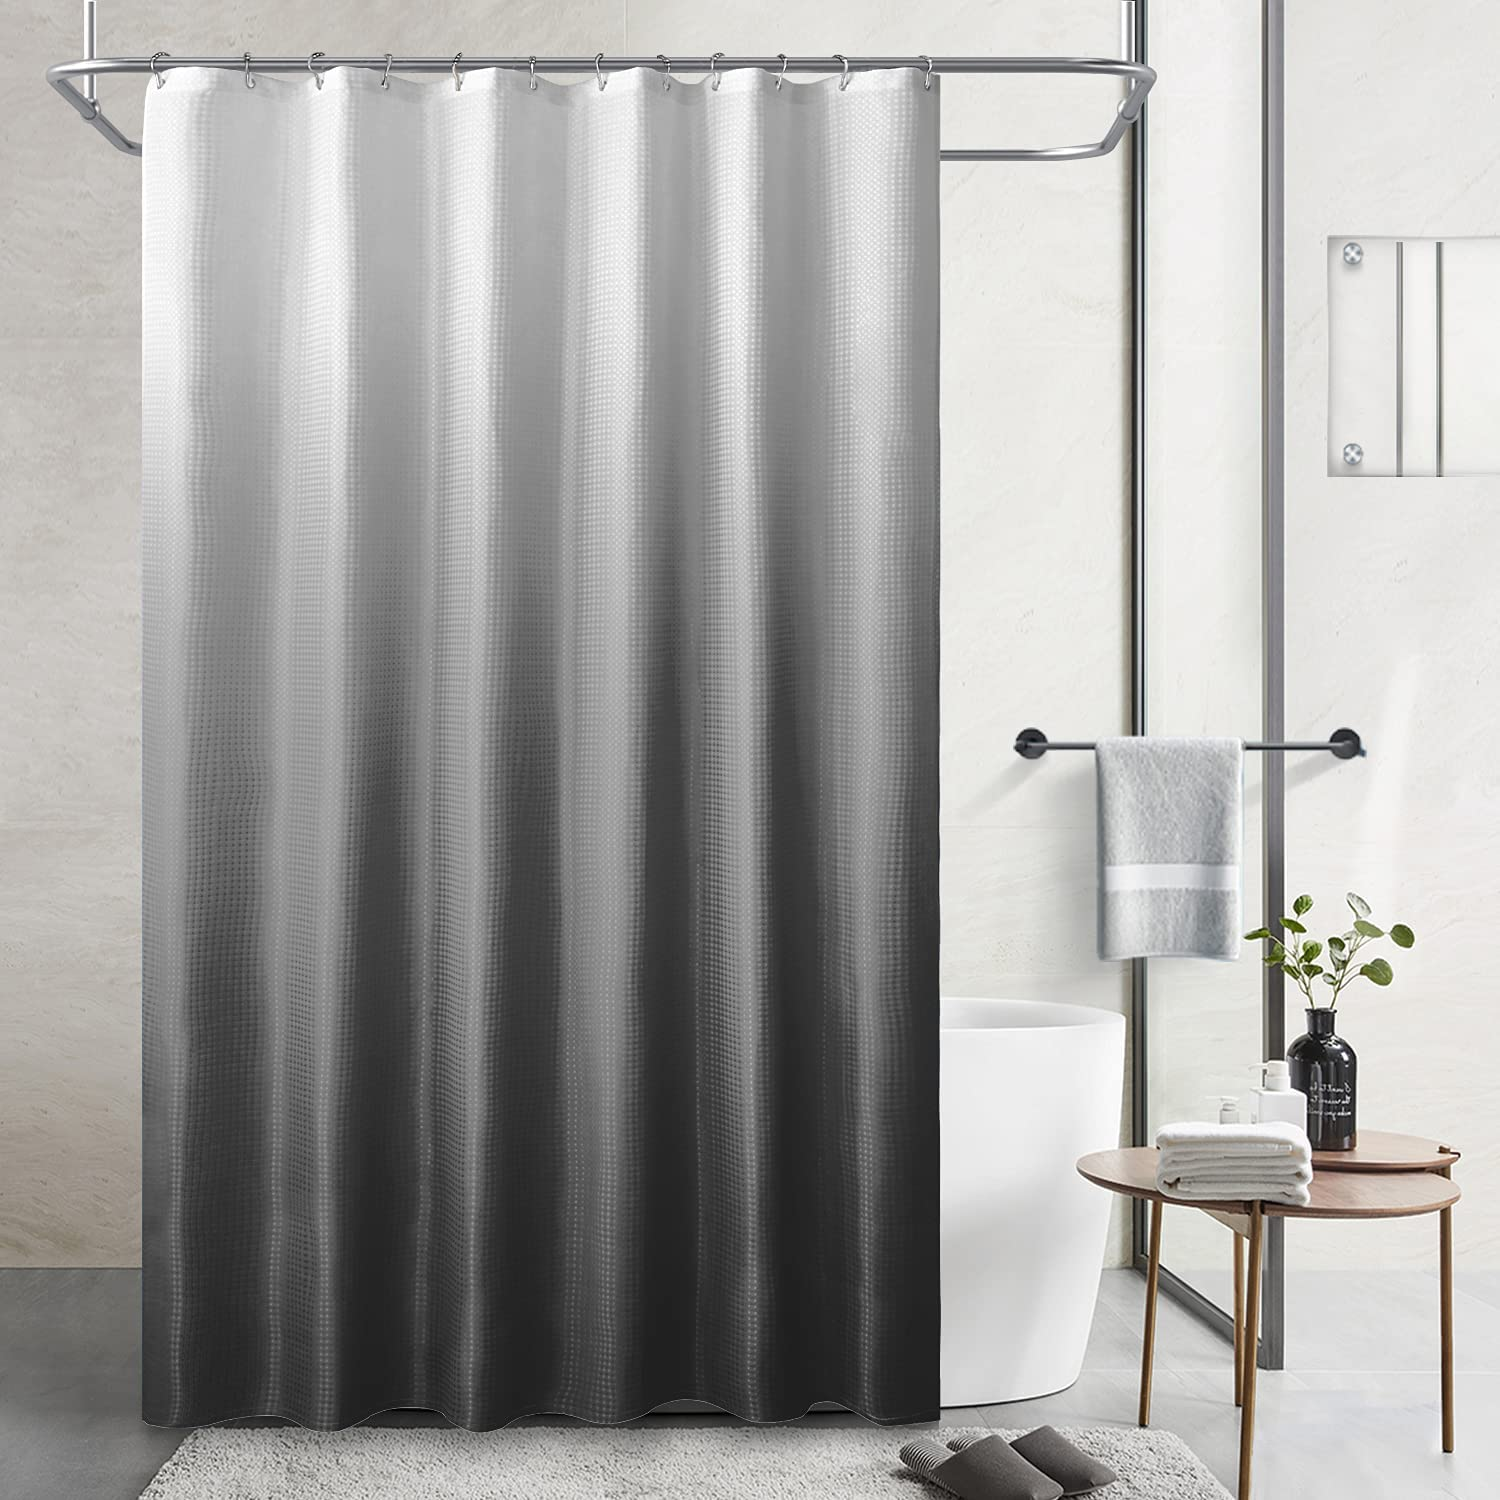 SOXART Home Polyester Ombre Bath Da for Bathroom Shower Curtains Shipping included Online limited product